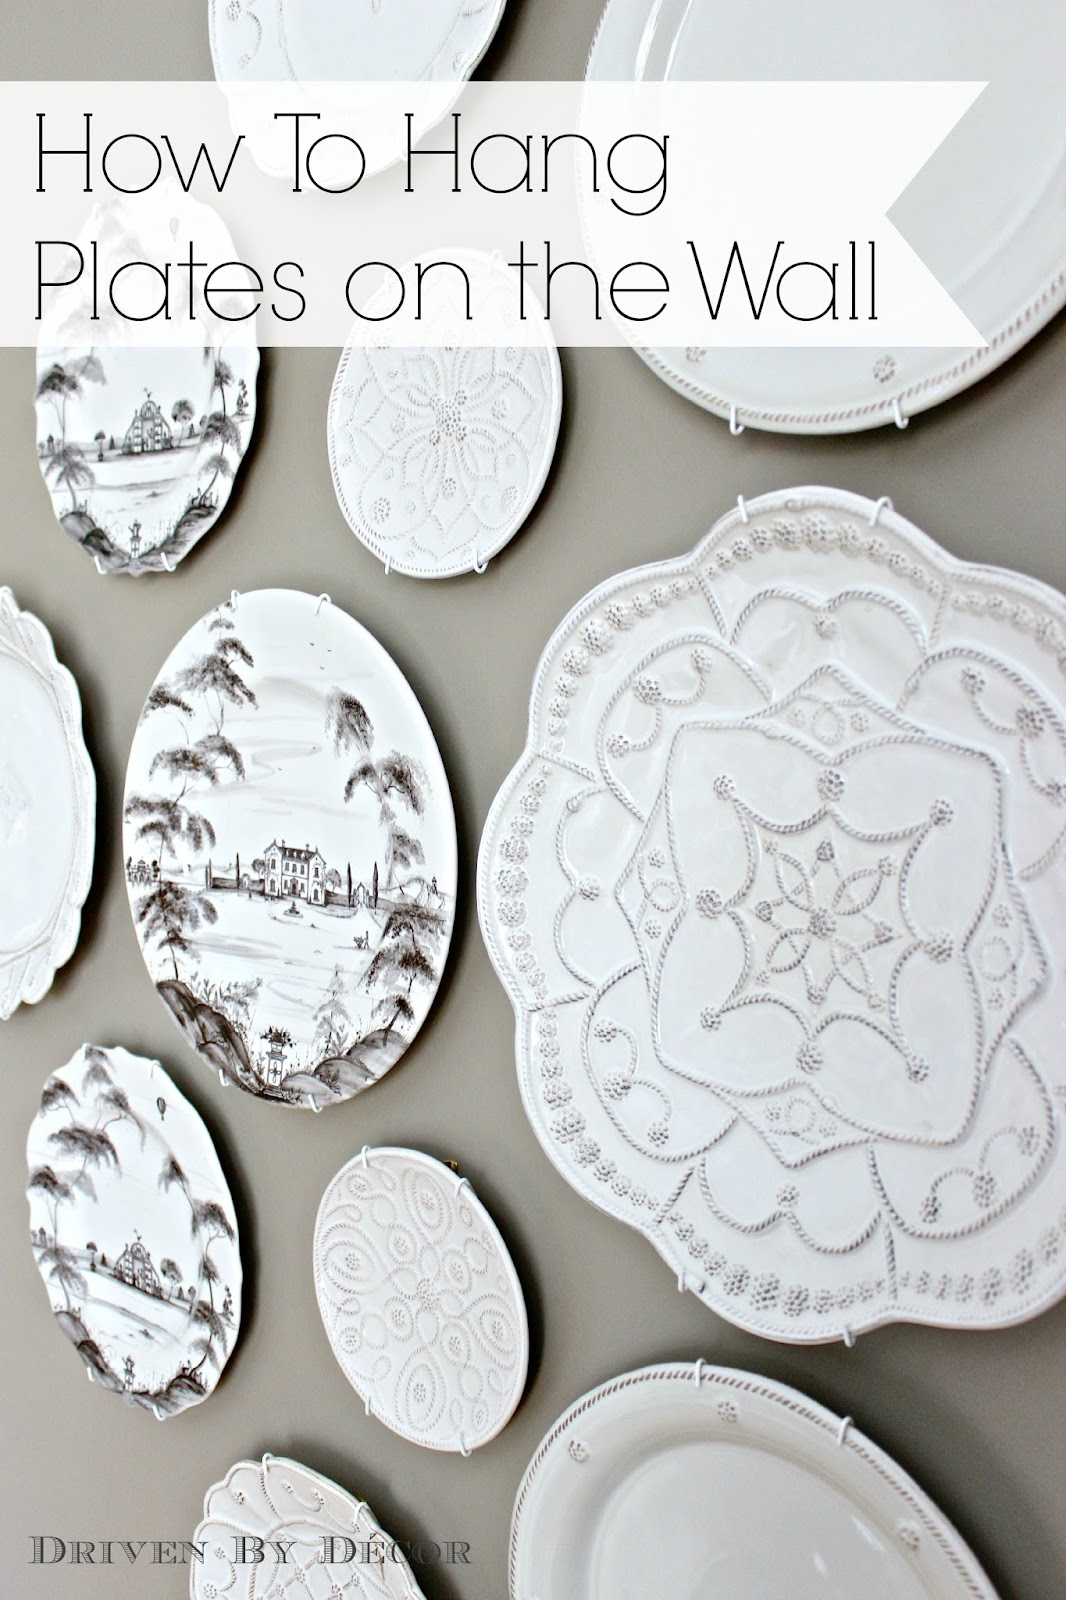 ... and why you may want to choose one method of hanging plates over the other (post includes affiliate links \u2013 see my full disclosure statement here)  sc 1 st  Driven by Decor & How To Hang Plates on the Wall (The Best Hangers \u0026 More!) | Driven ...